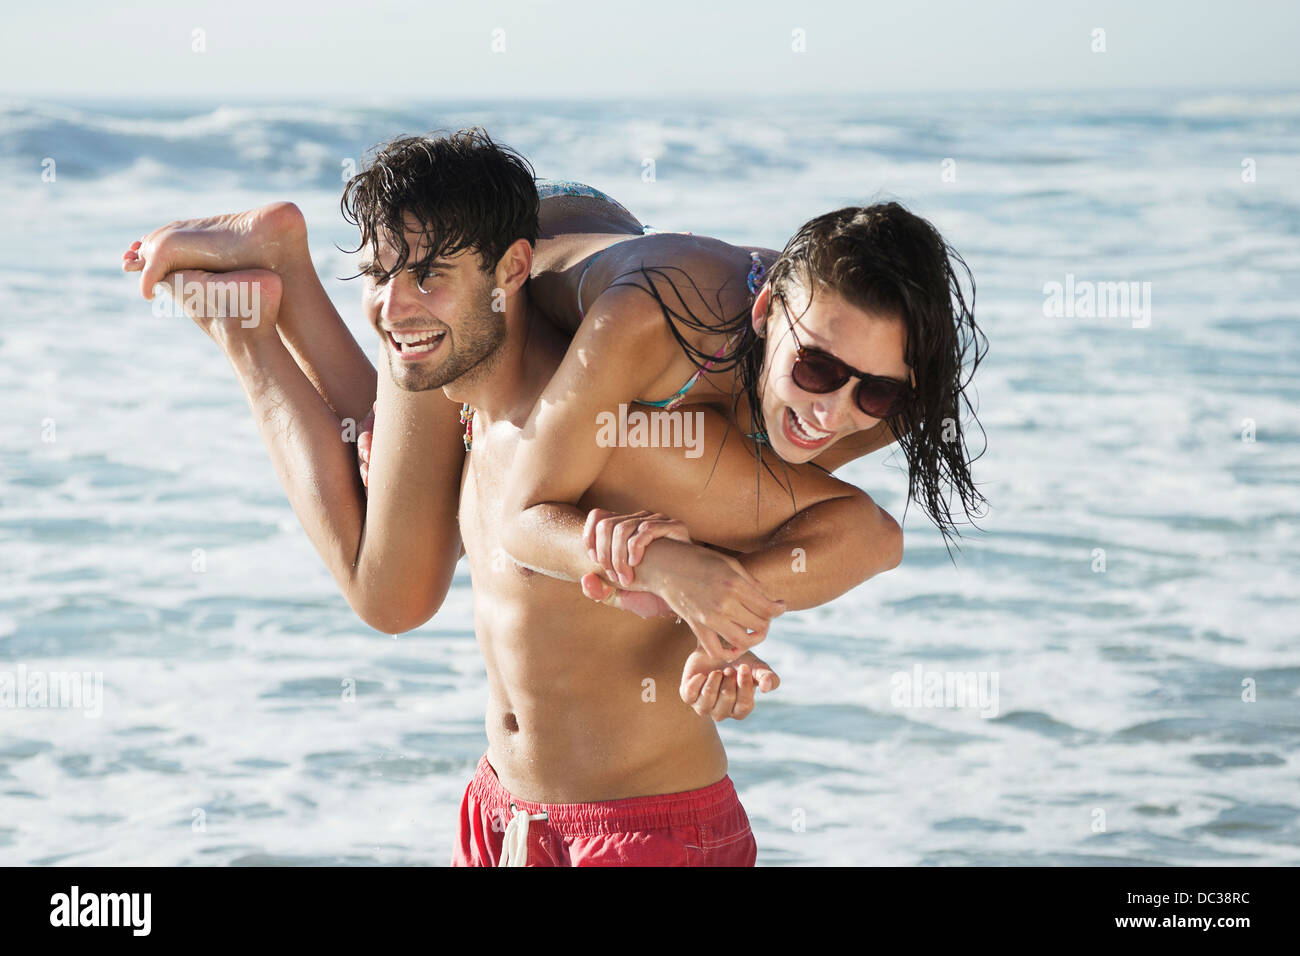 Happy man carrying woman on beach - Stock Image